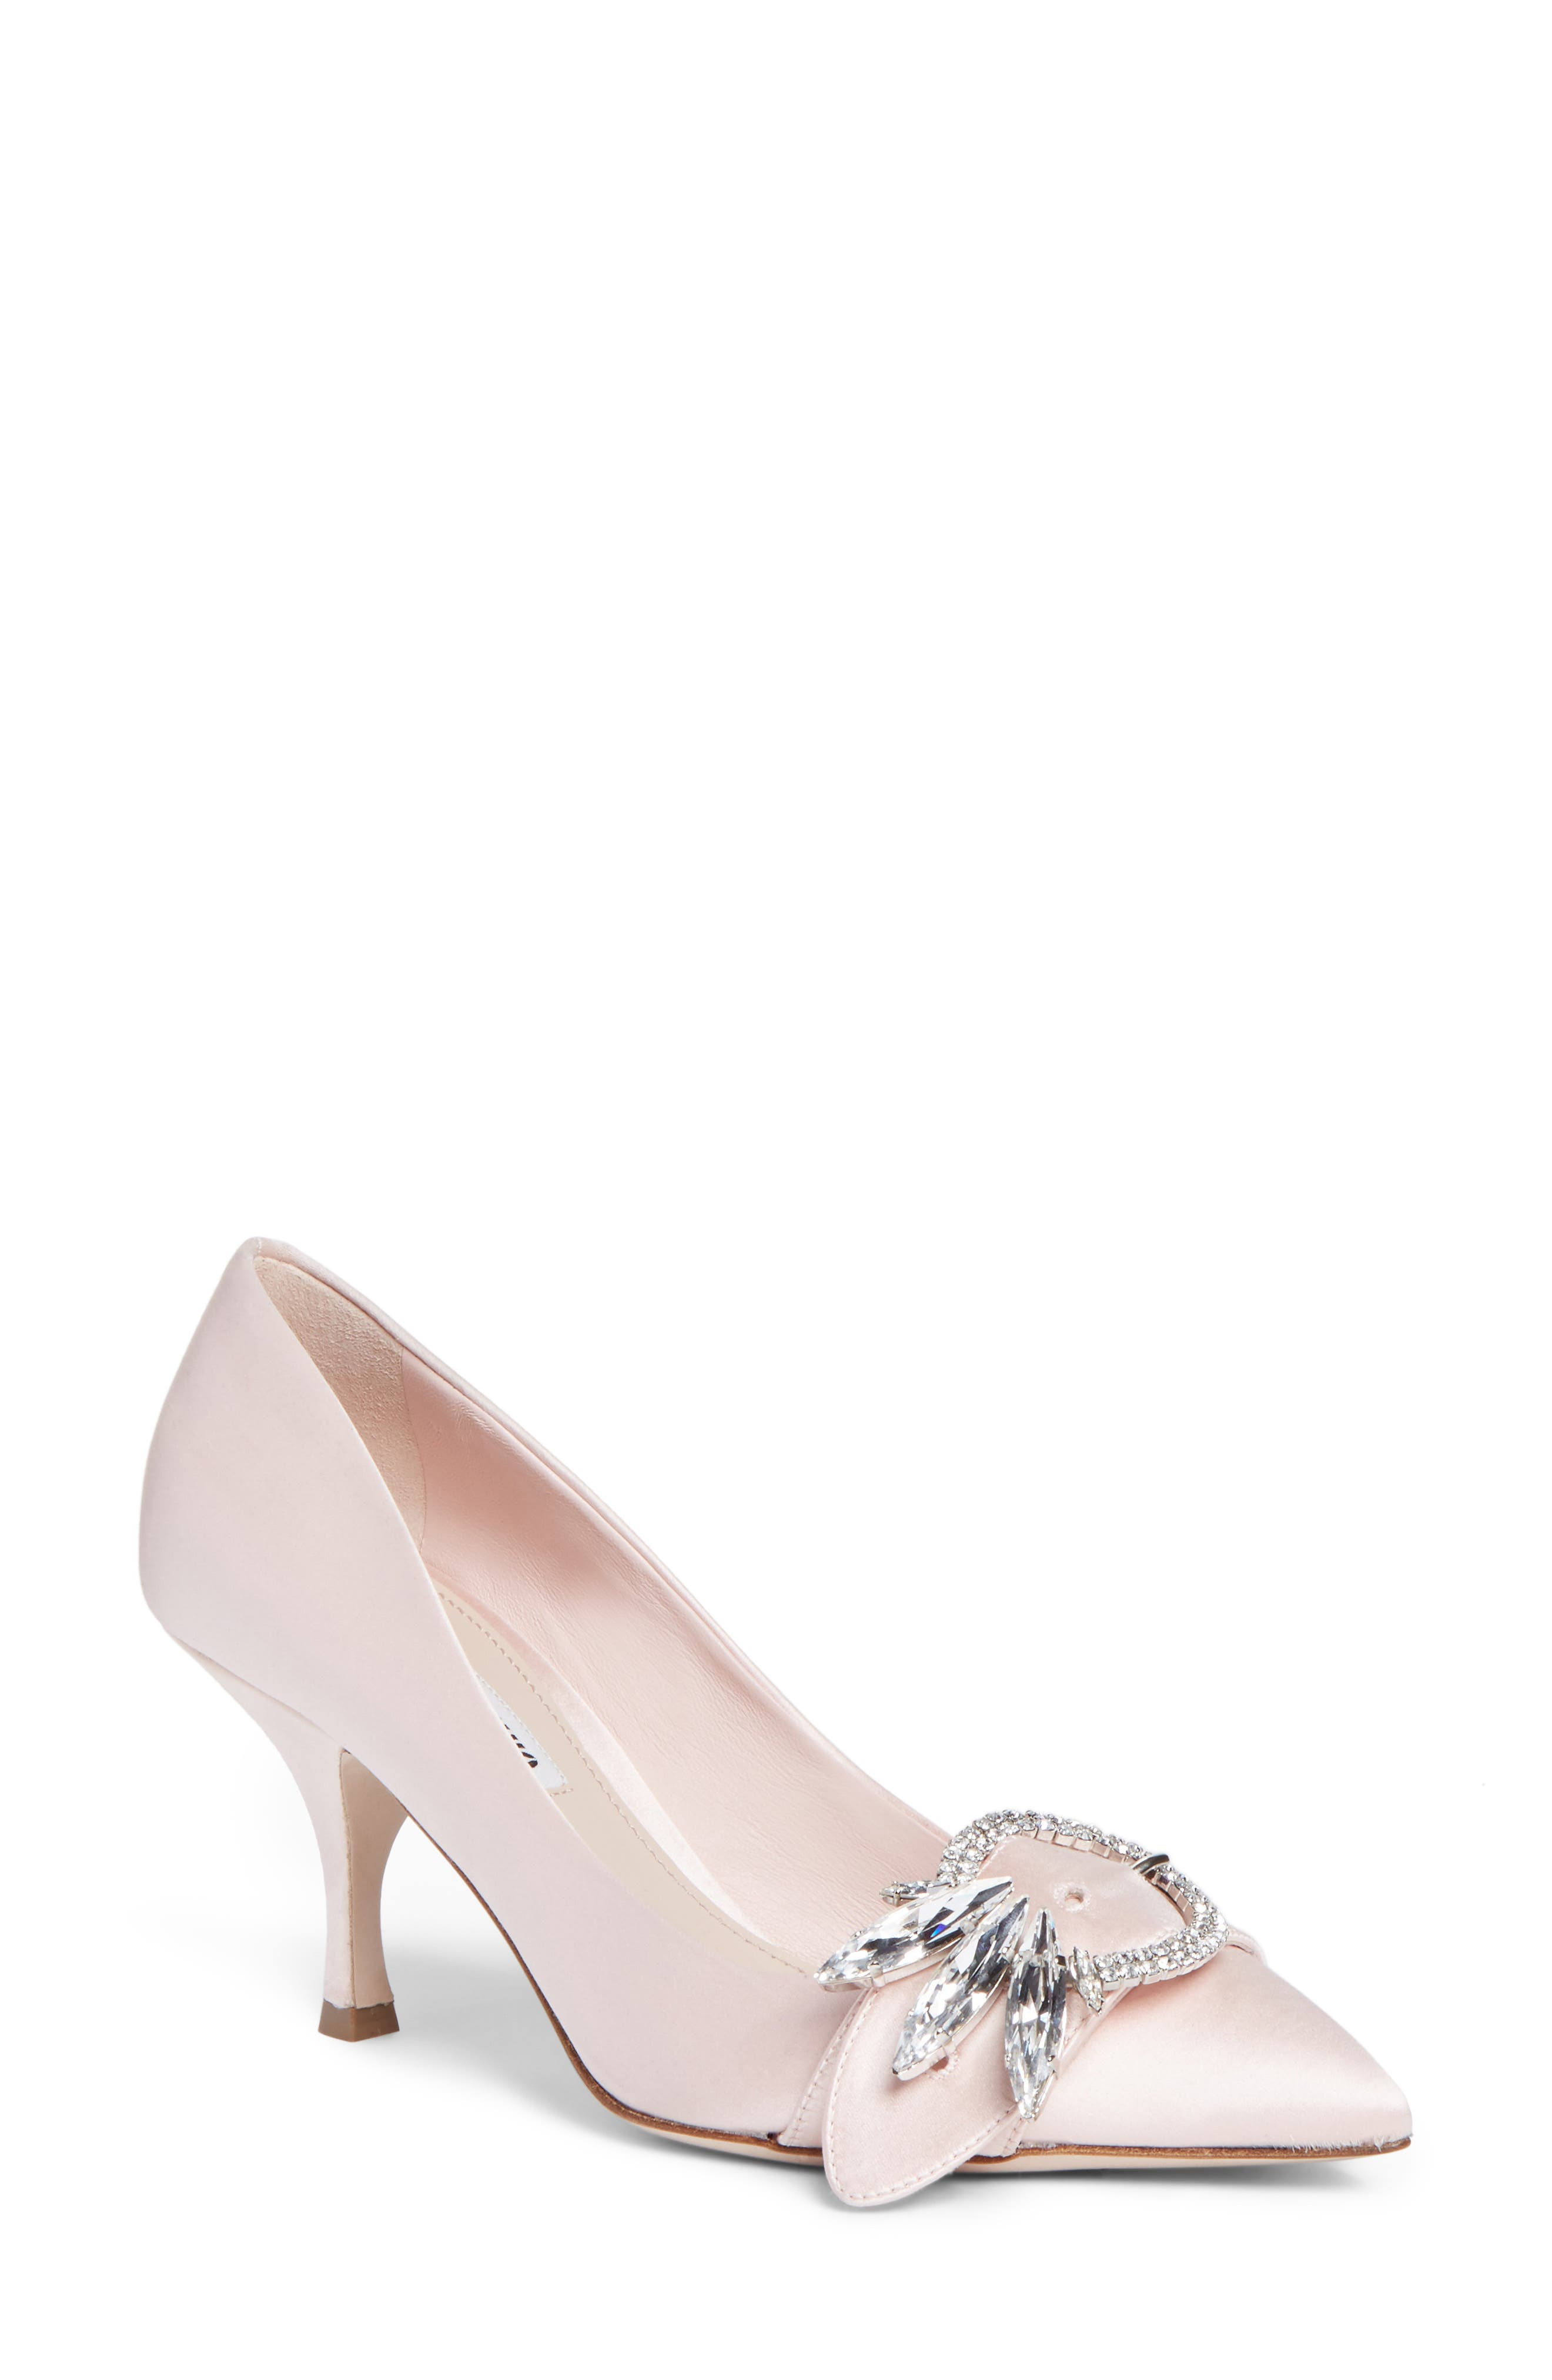 Crystal Buckle Pump,                         Main,                         color, Pink Satin